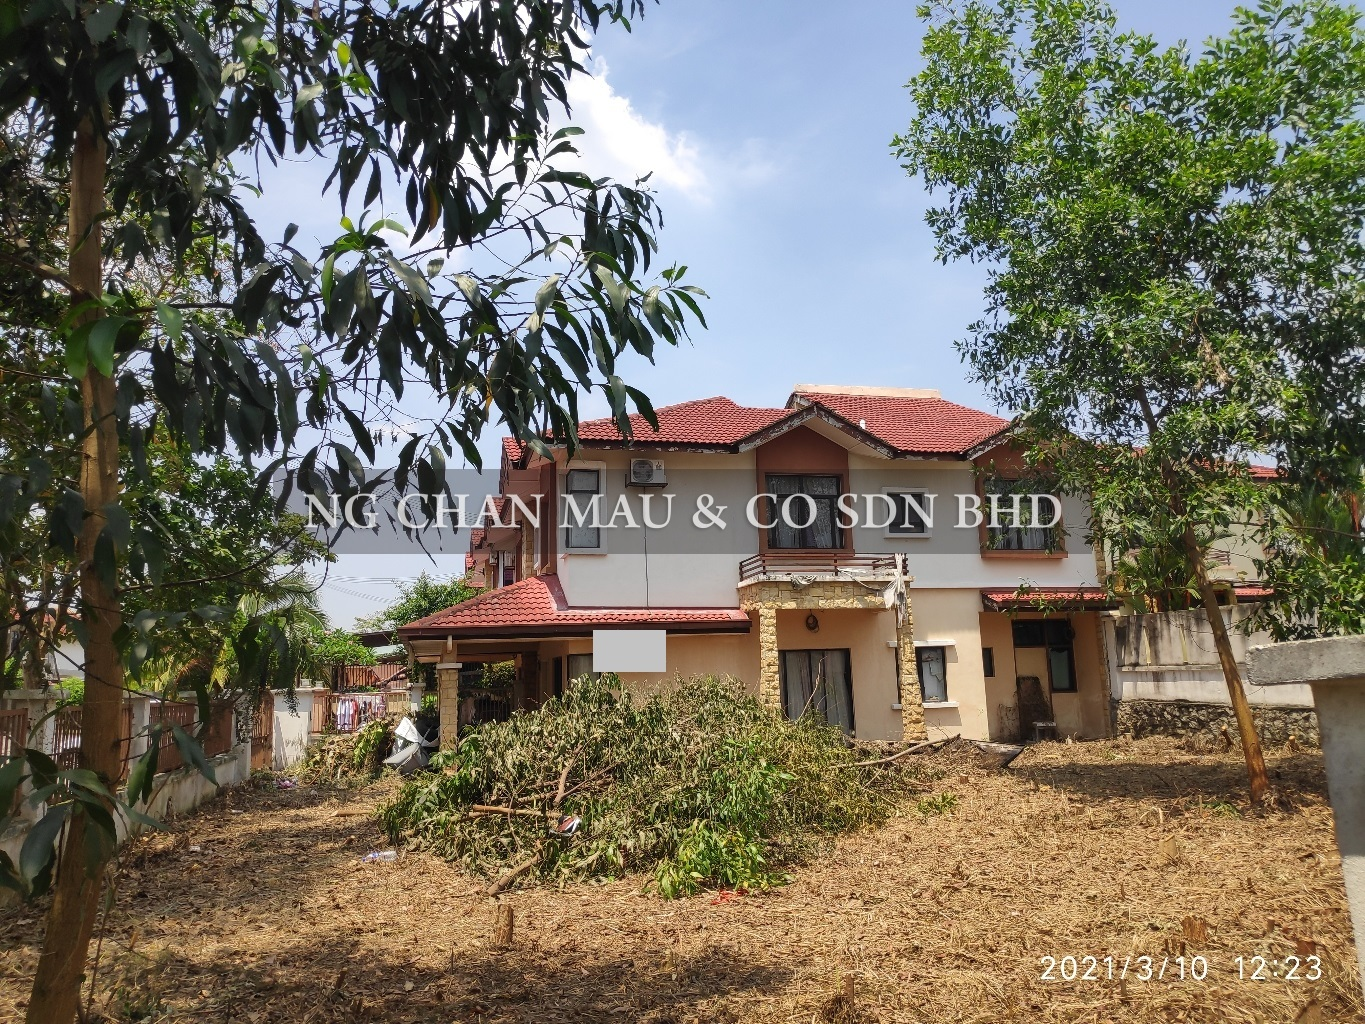 [Vacant Unit] 2 Storey Semi Detached House, Corner Lot, 8 mins to Taylor's International School Puchong